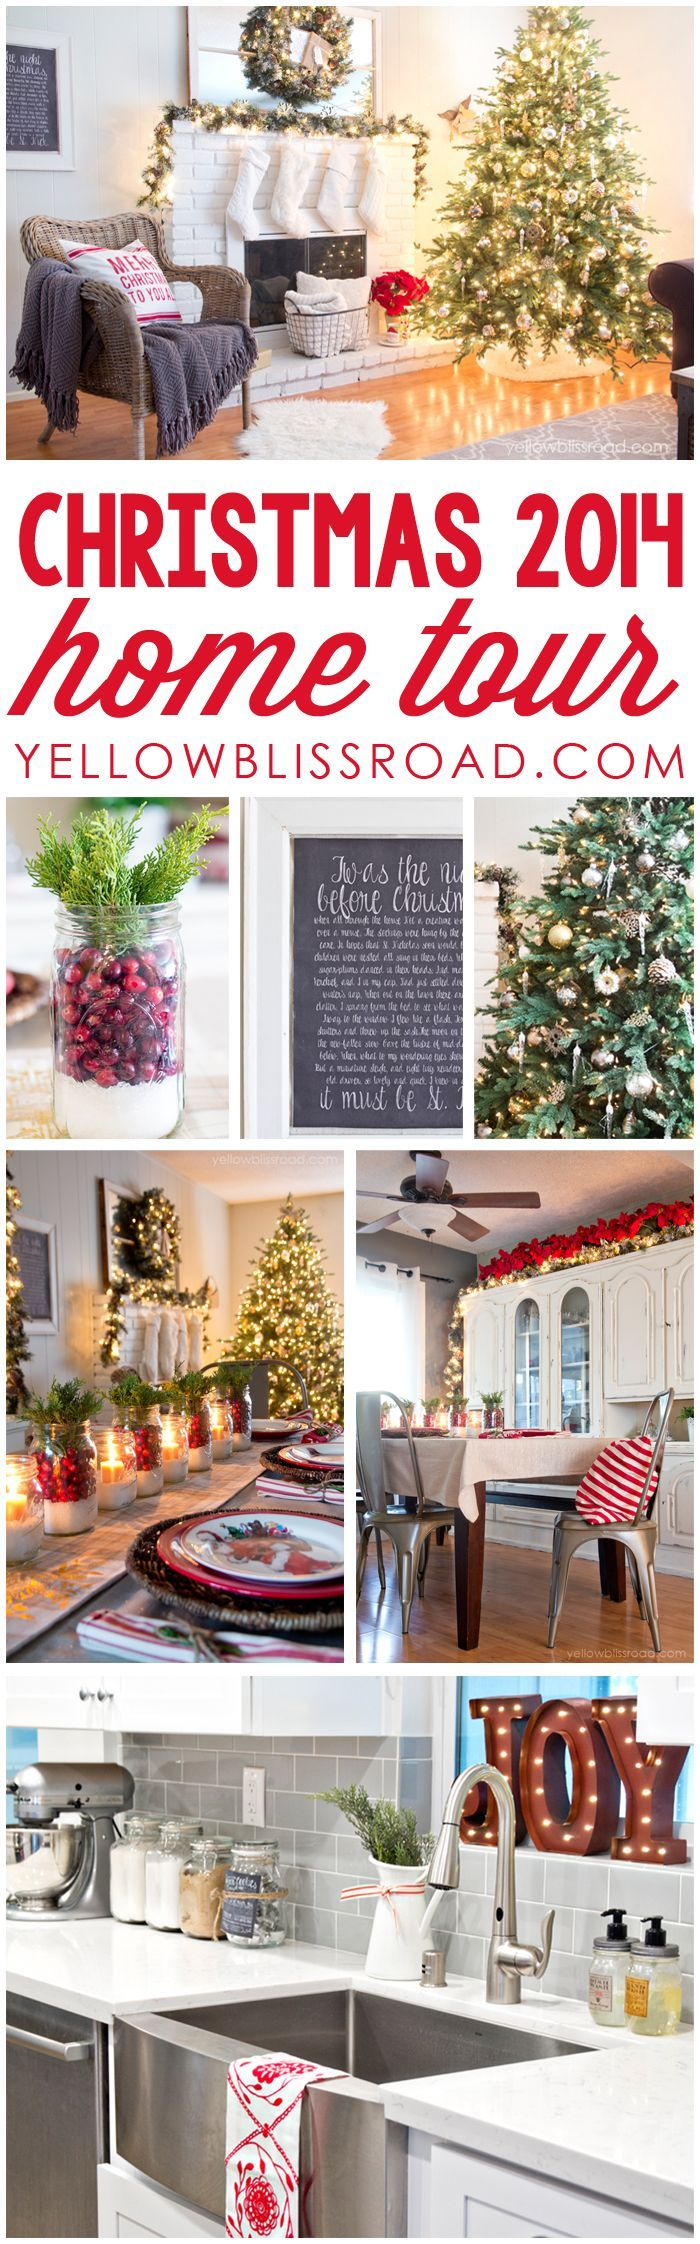 444 best christmas homes images on pinterest